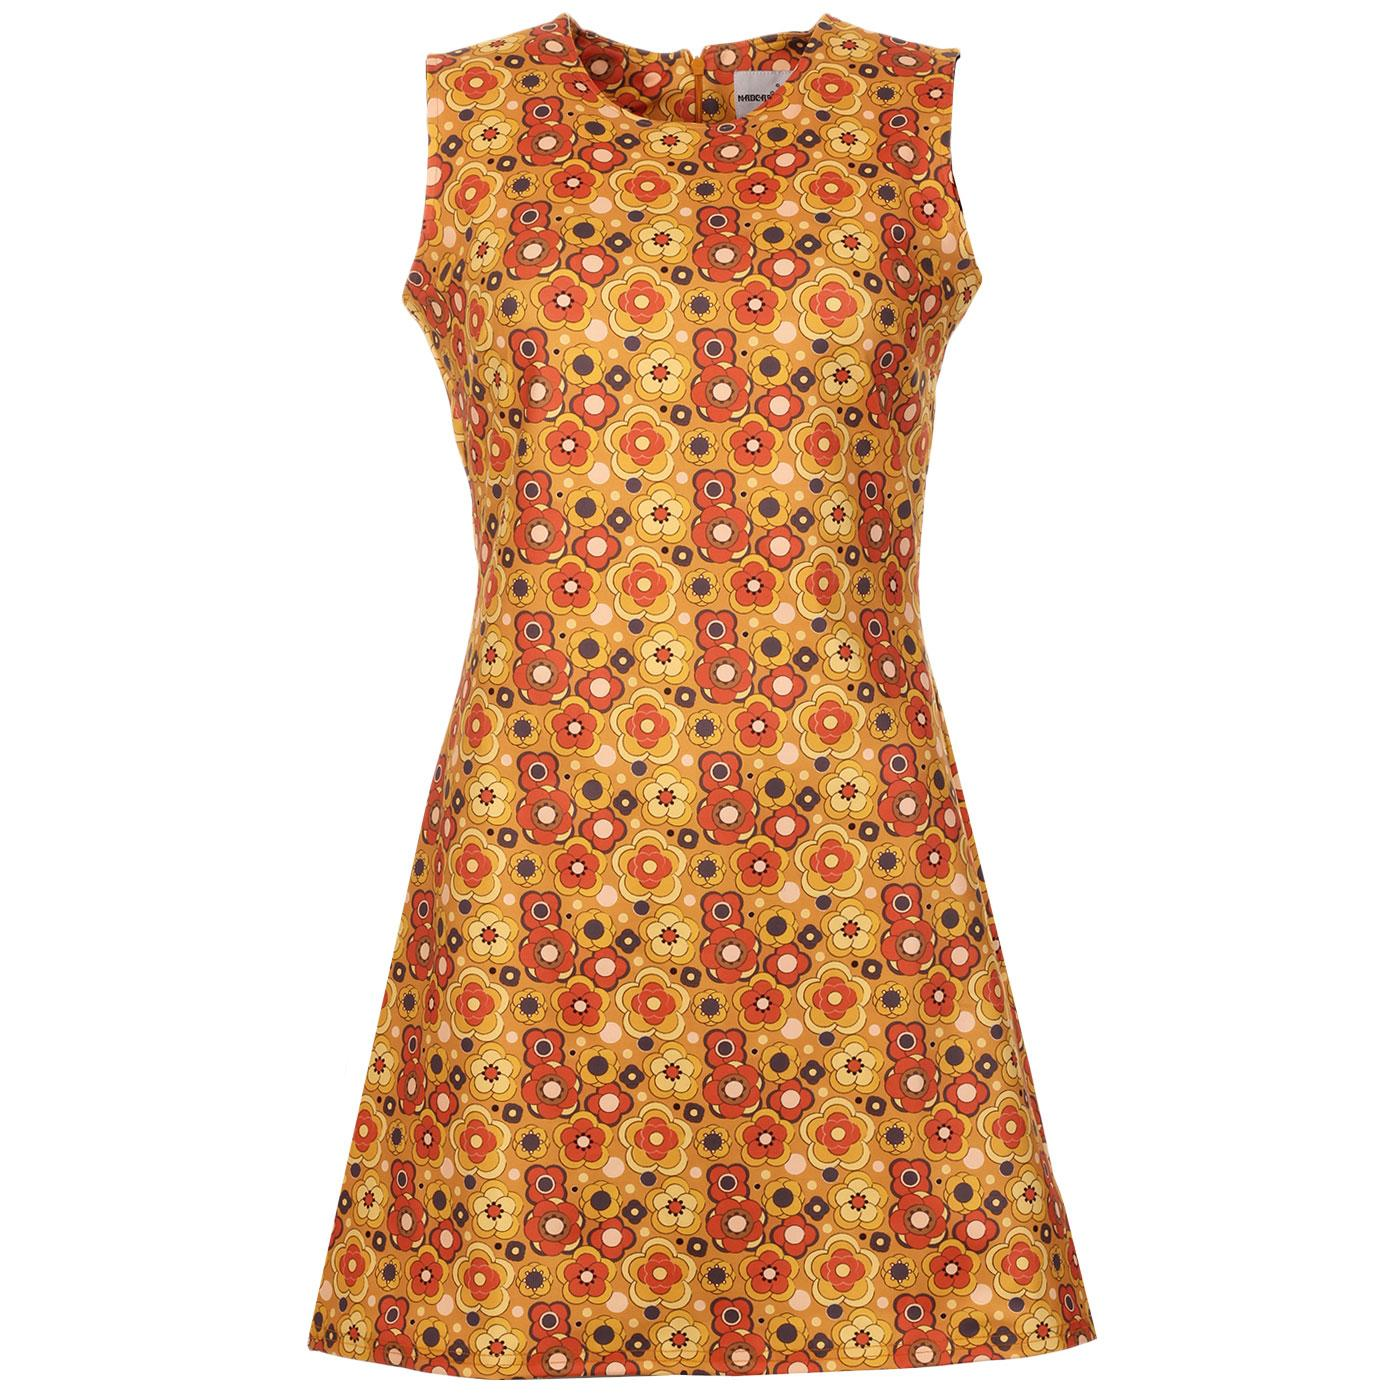 Daytripper MADCAP ENGLAND Retro Floral Shift Dress